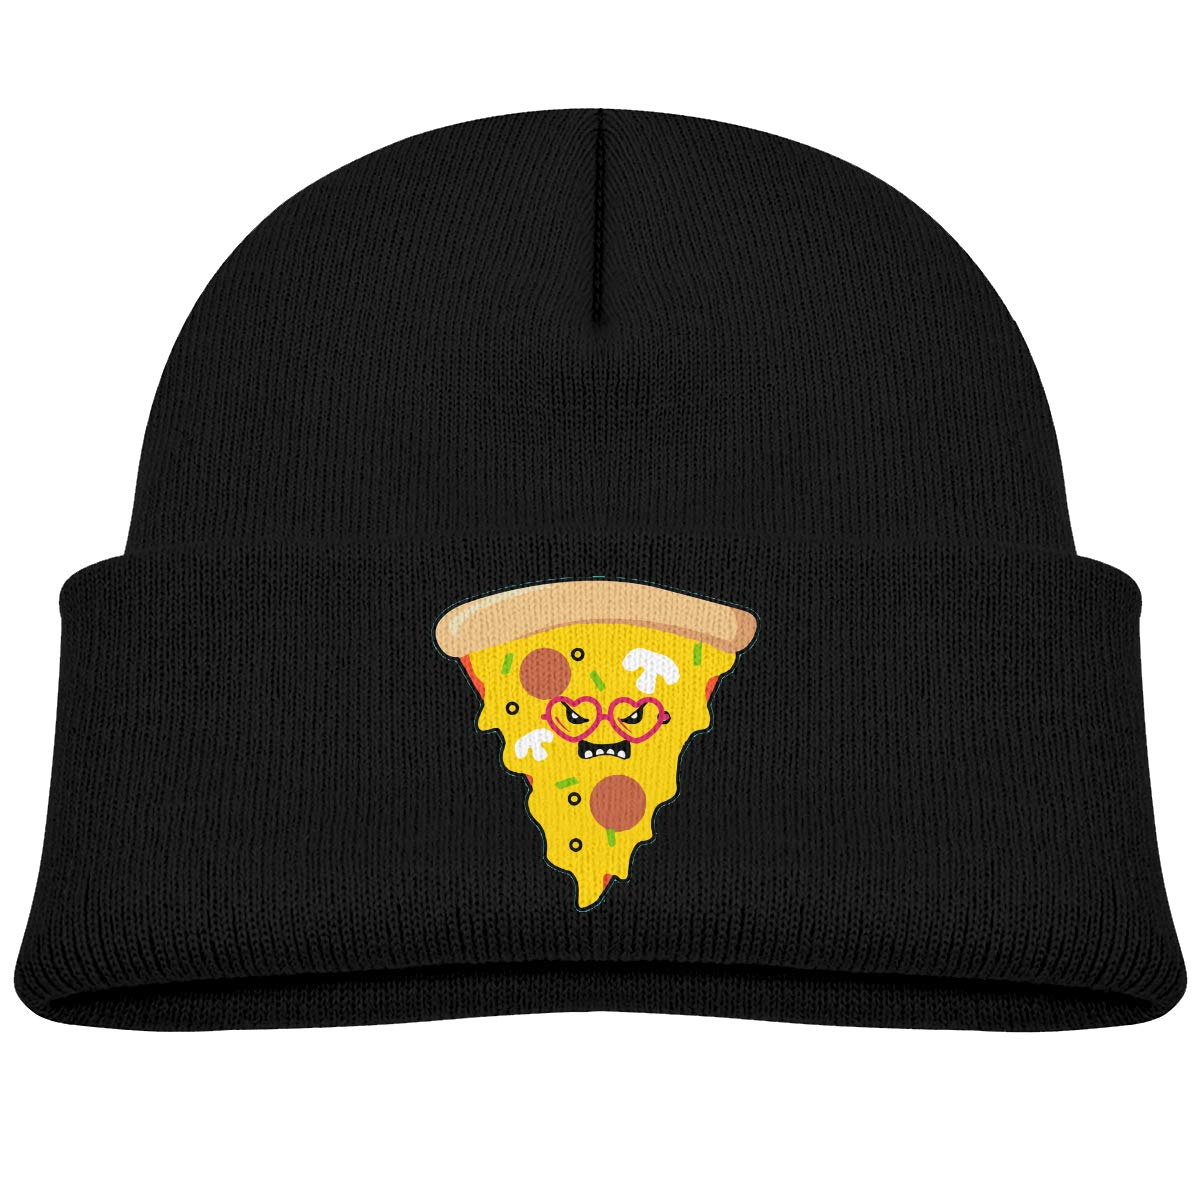 Youre A Real Pizza Knitted Hat Warm Skull Beanies Childrens Cuffed Plain Cap